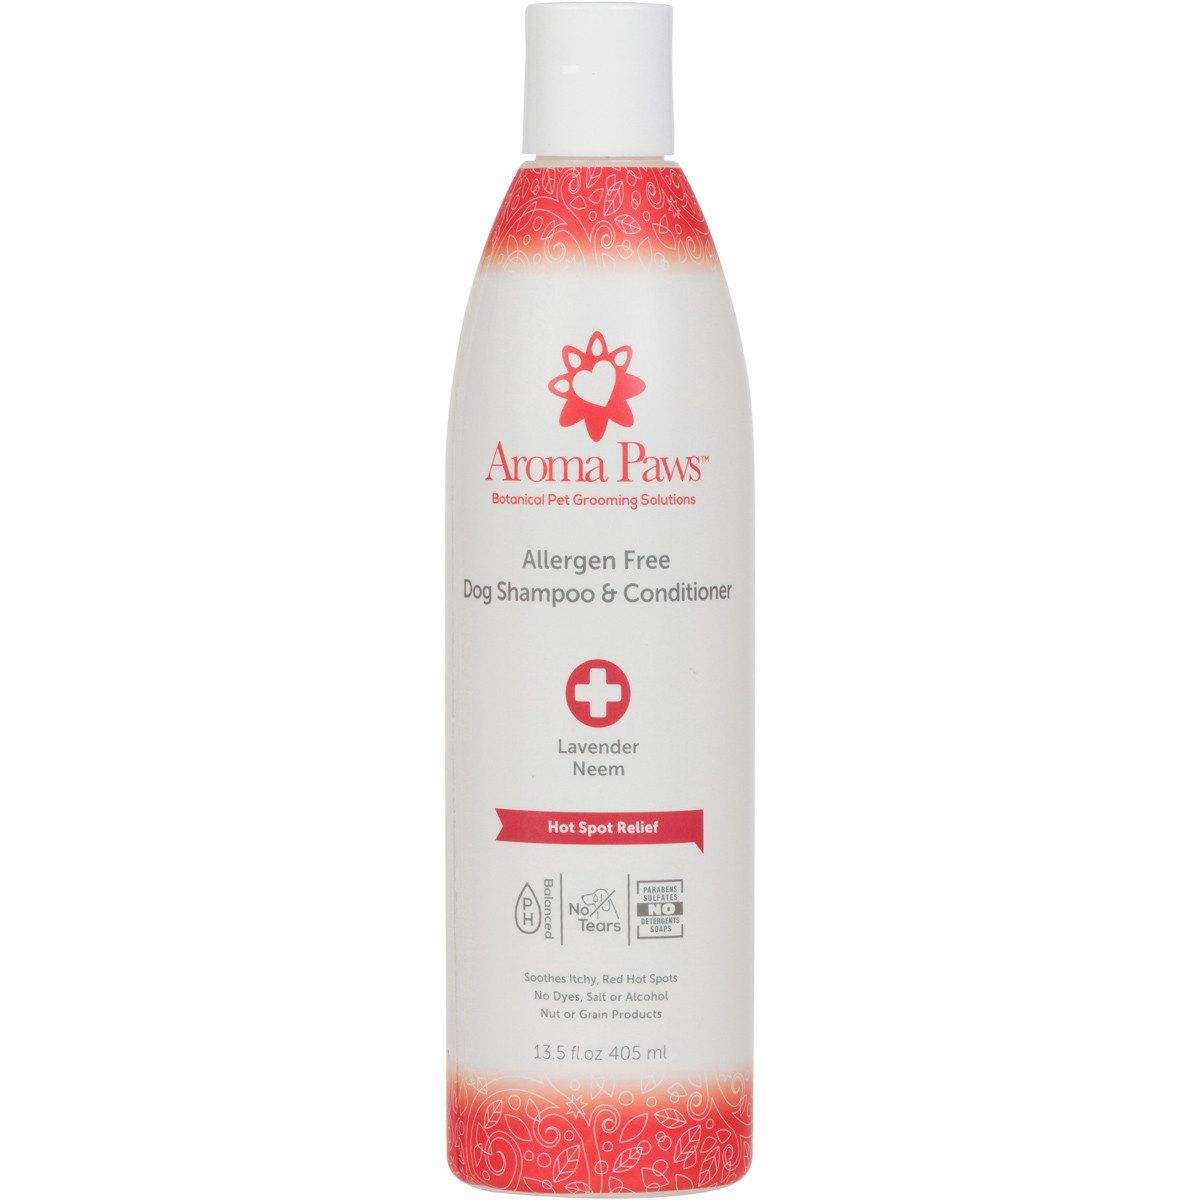 Allergen Free Hot Spot Relief Dog Shampoo and Conditioner